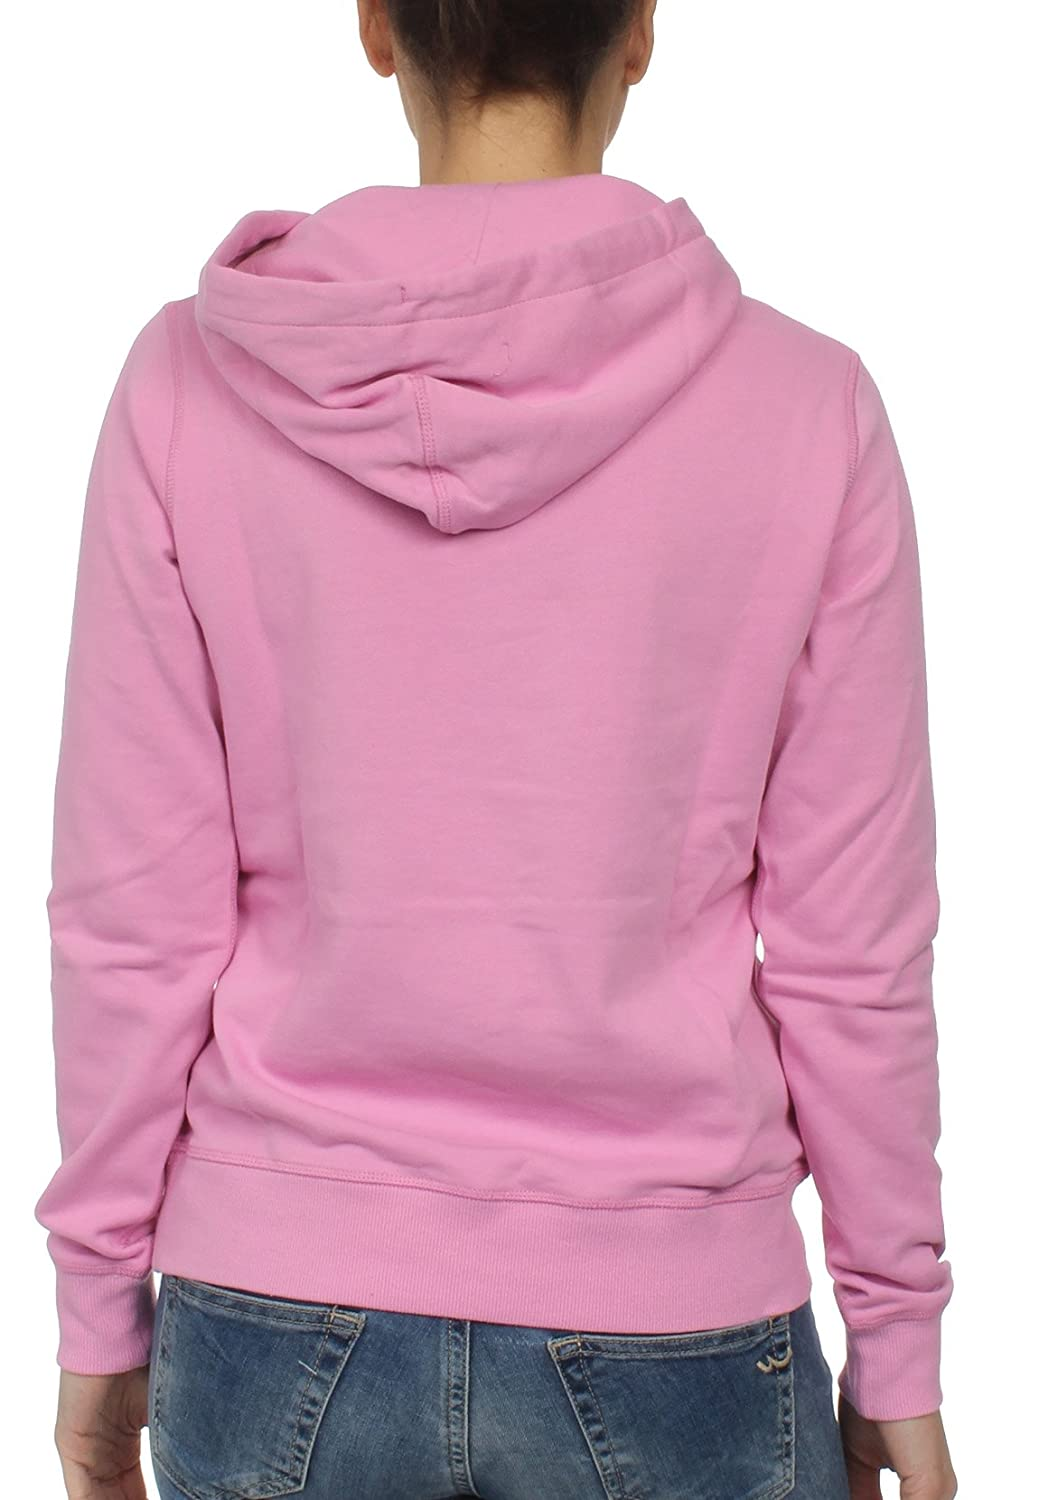 Converse Graphic Boxstar Pullover Hoodie Men, Women, Pink